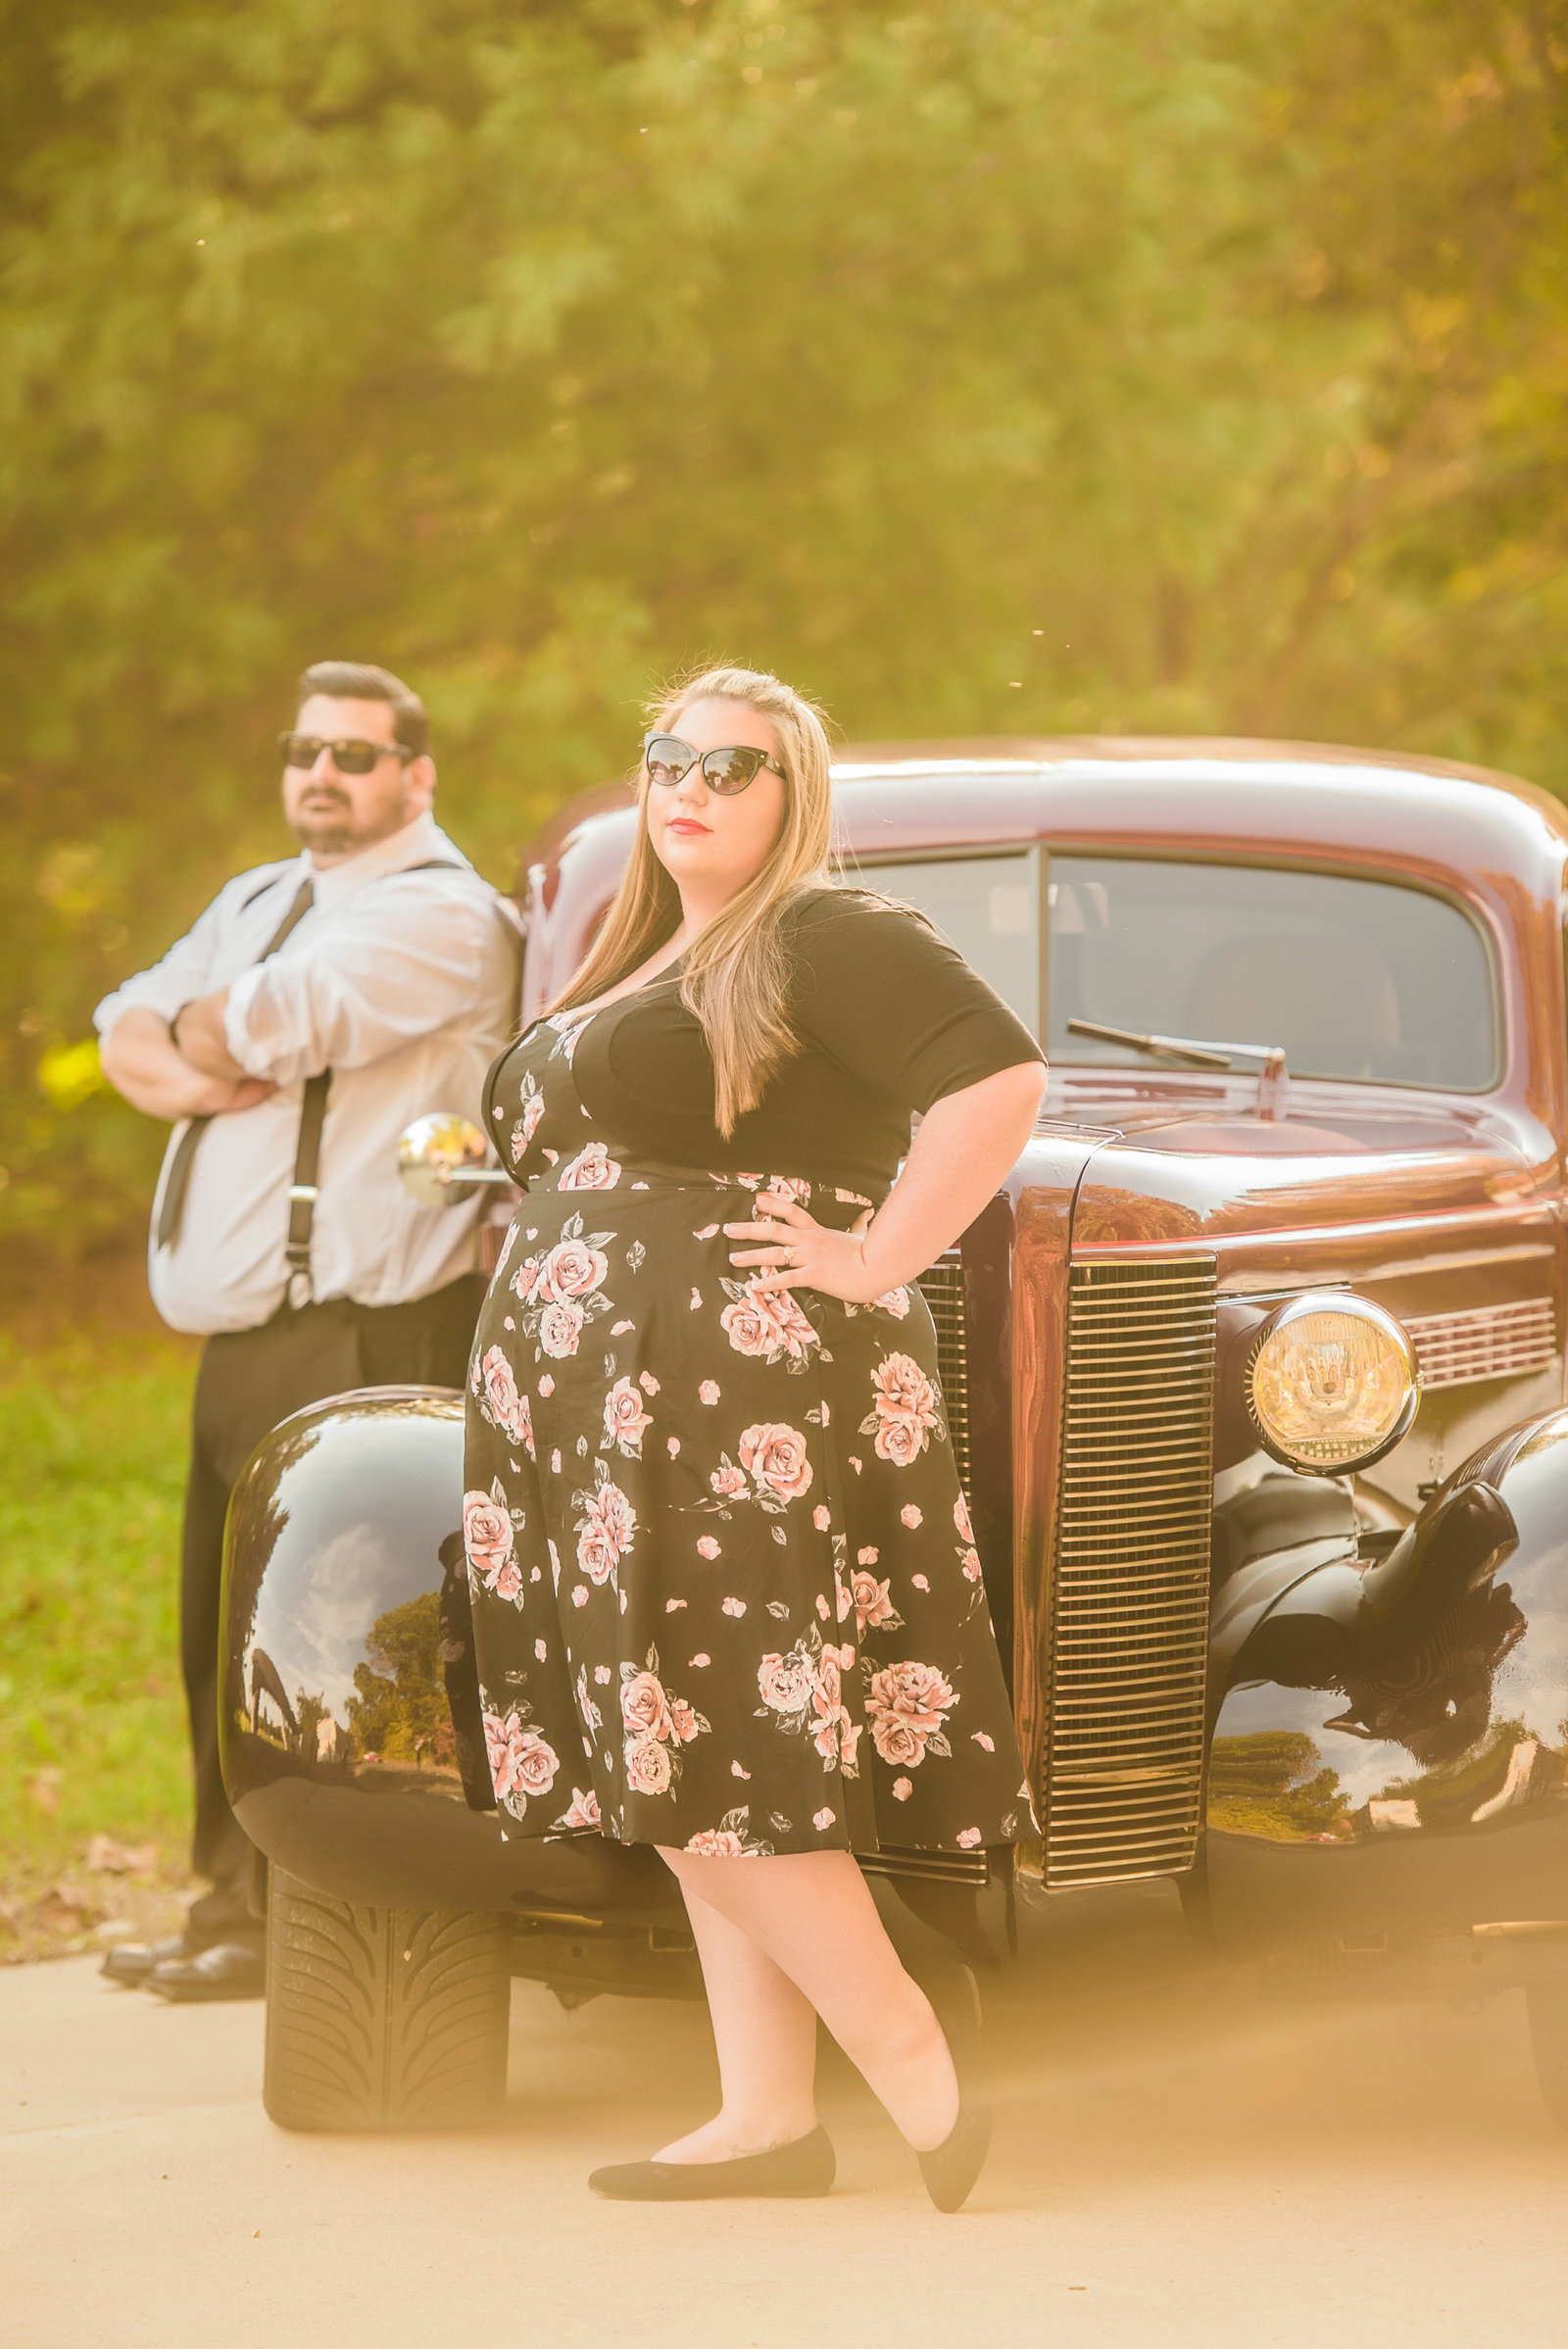 Retro_Pinup_Car_engagement_session_Nj012